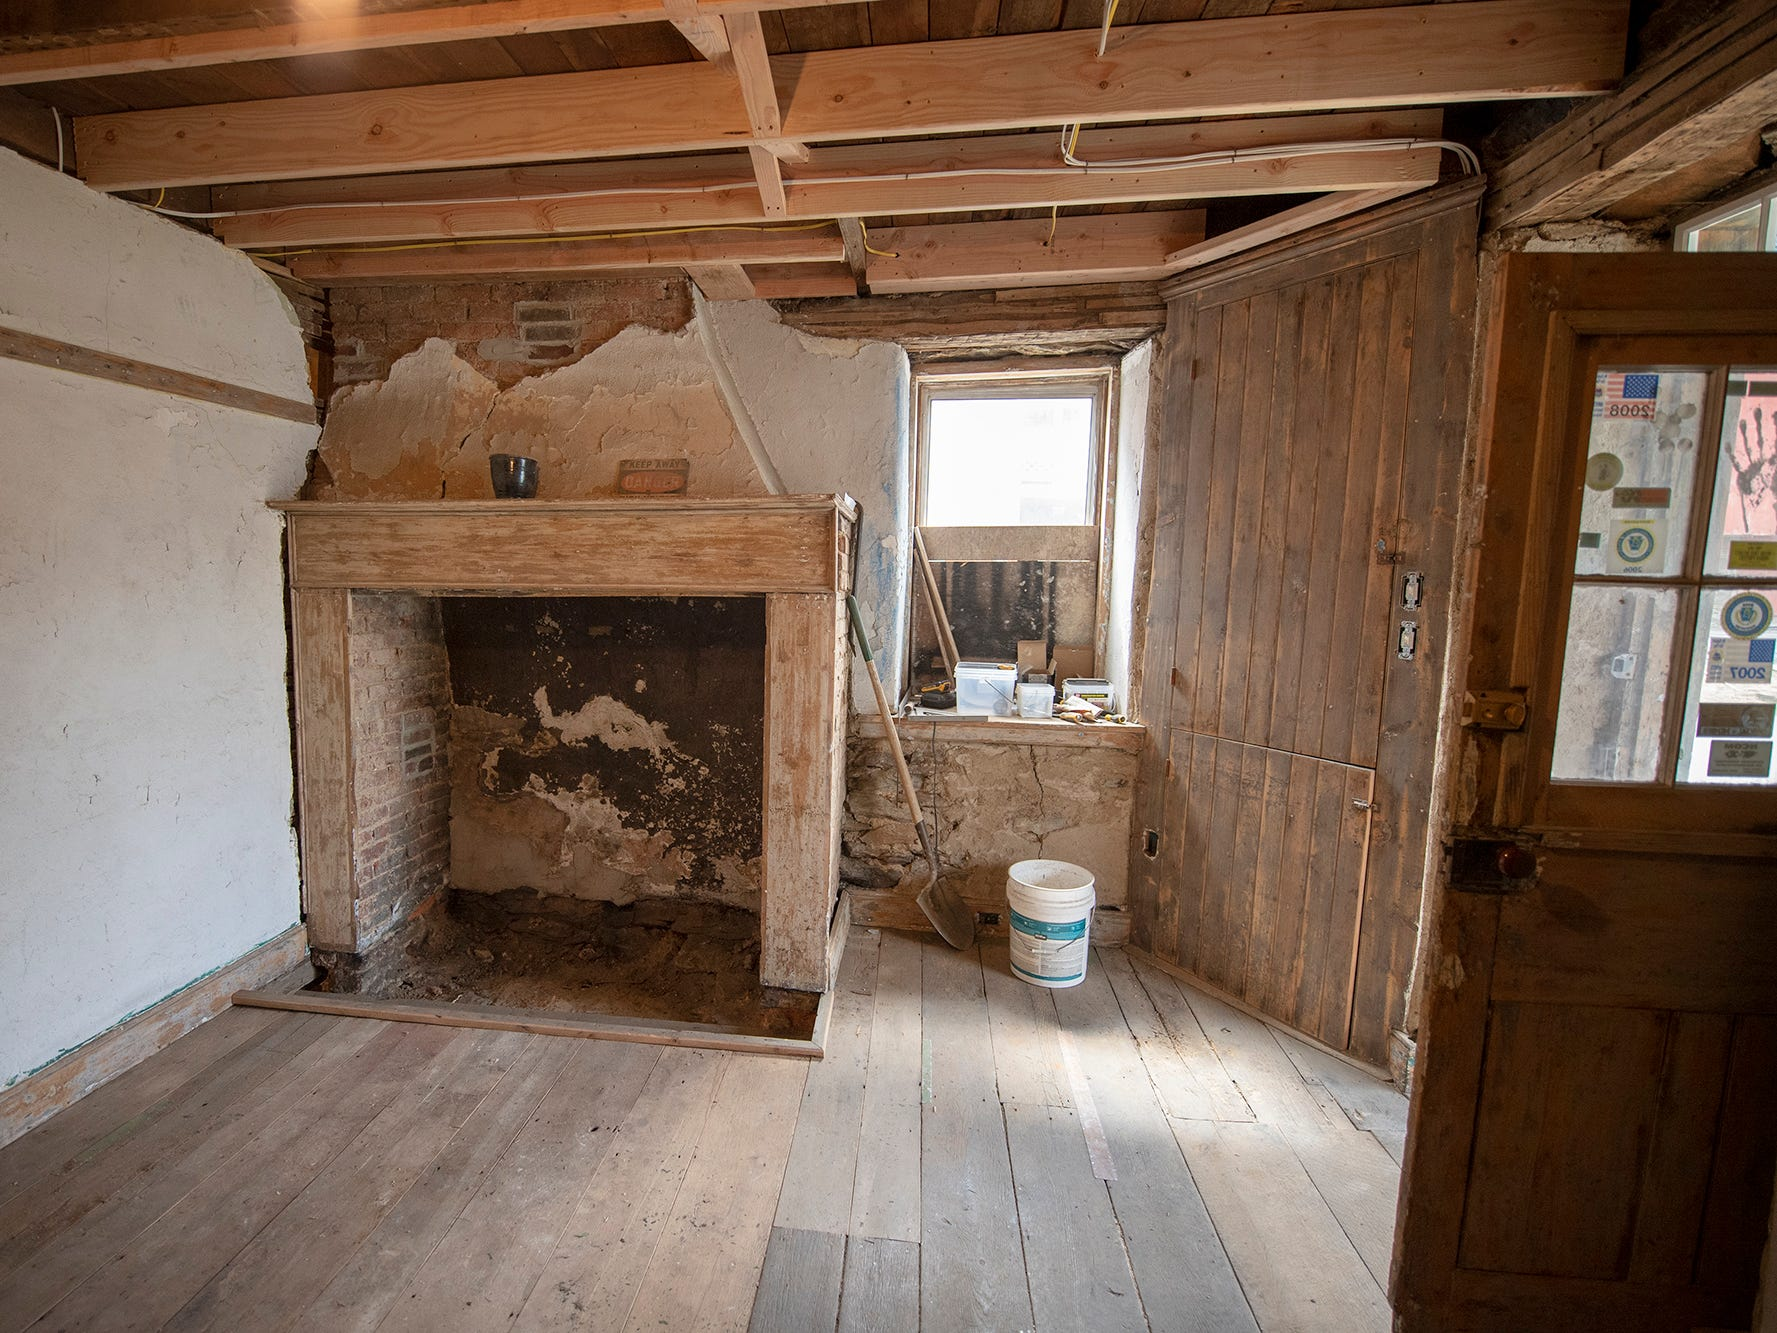 This is looking at the fireplace inside the stone building under renovation in Seitzland Village outside of Glen Rock.